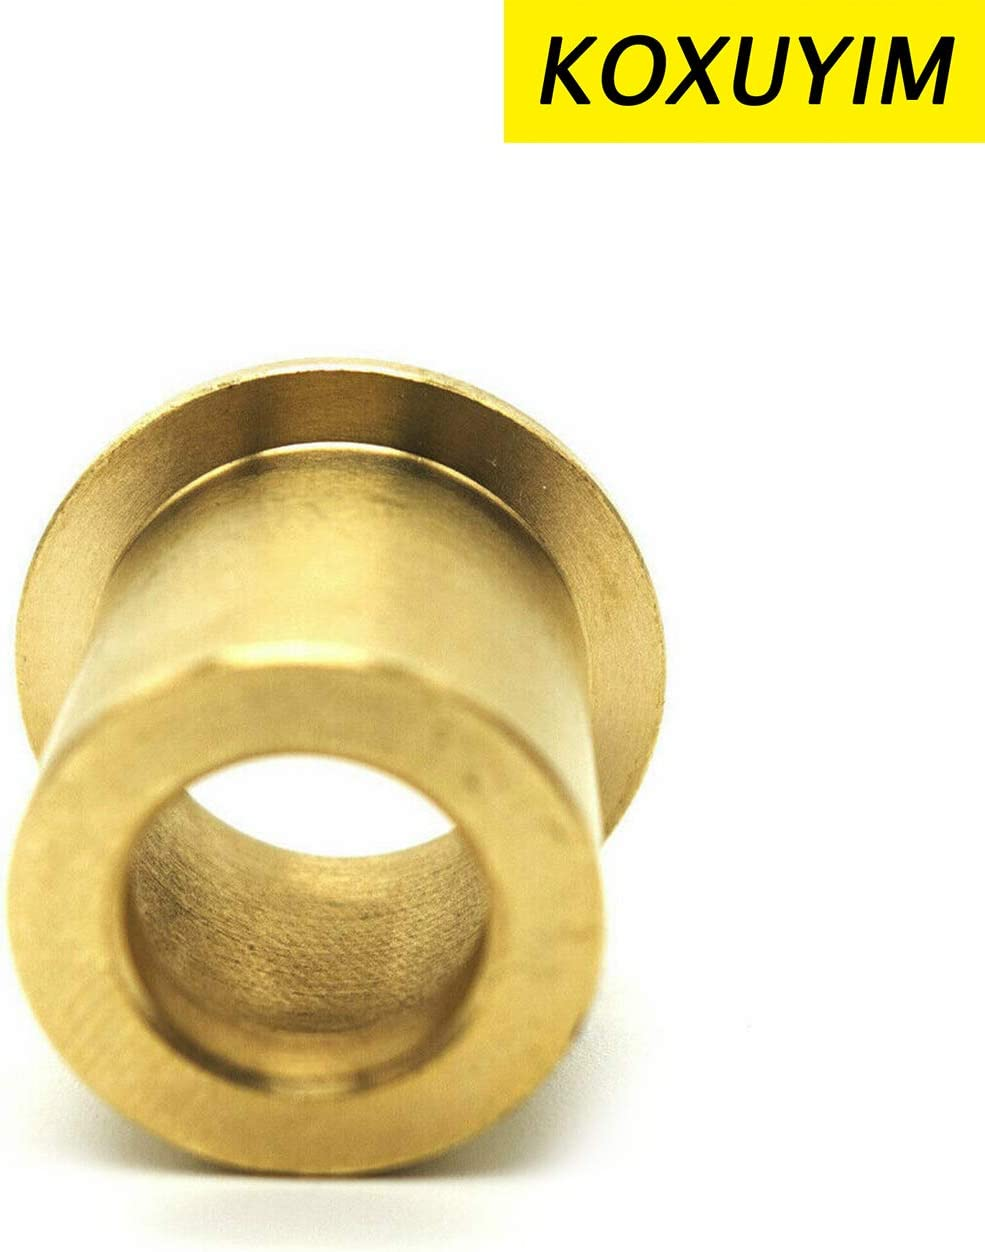 koxuyim Bronze Shifter Cup Isolator Bushing,Fits for S10 S15 T4 T5 ...